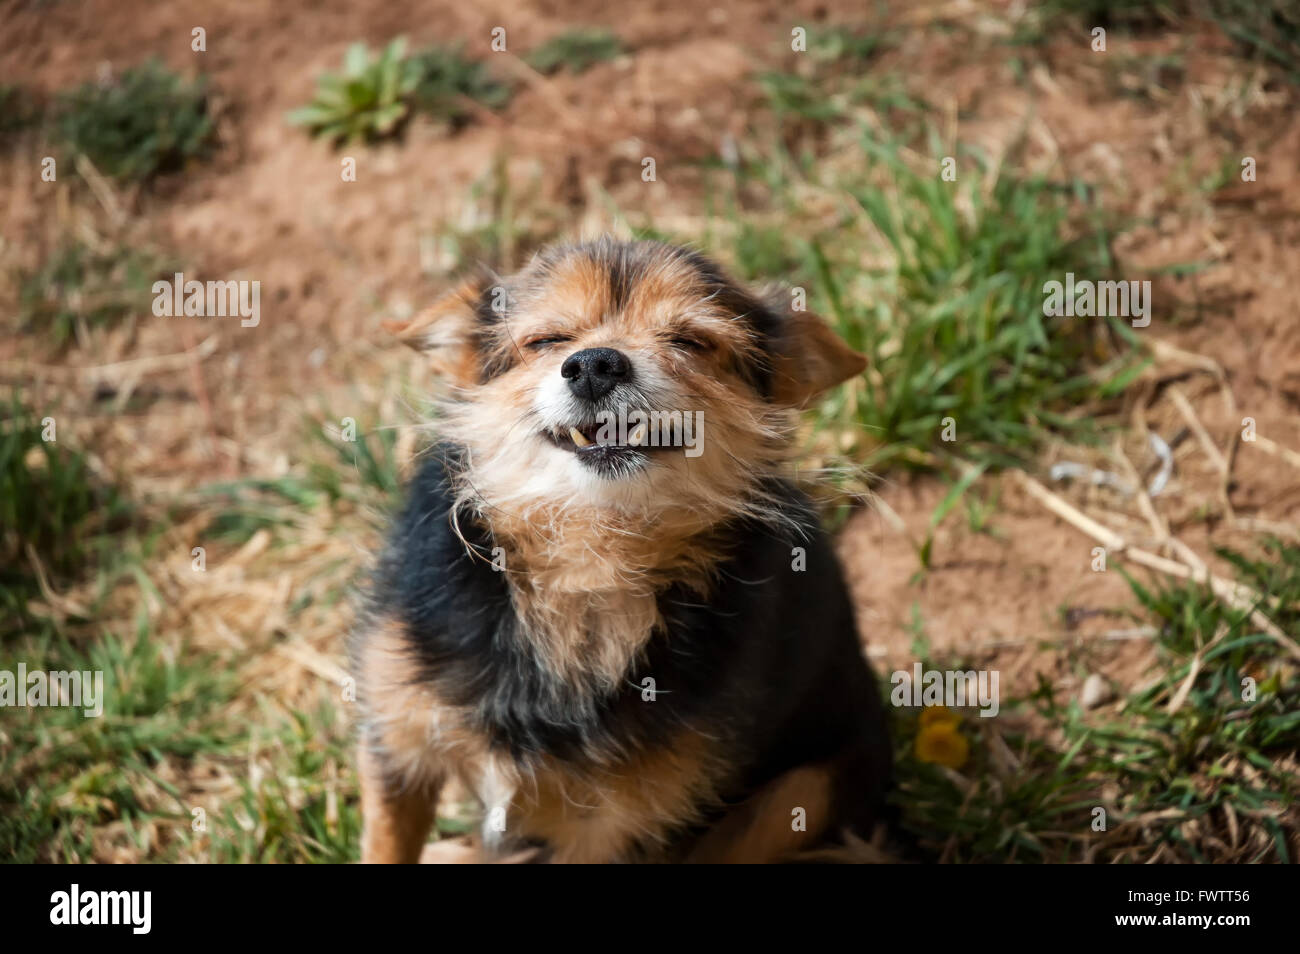 Dog taking in the sun #2 - Stock Image